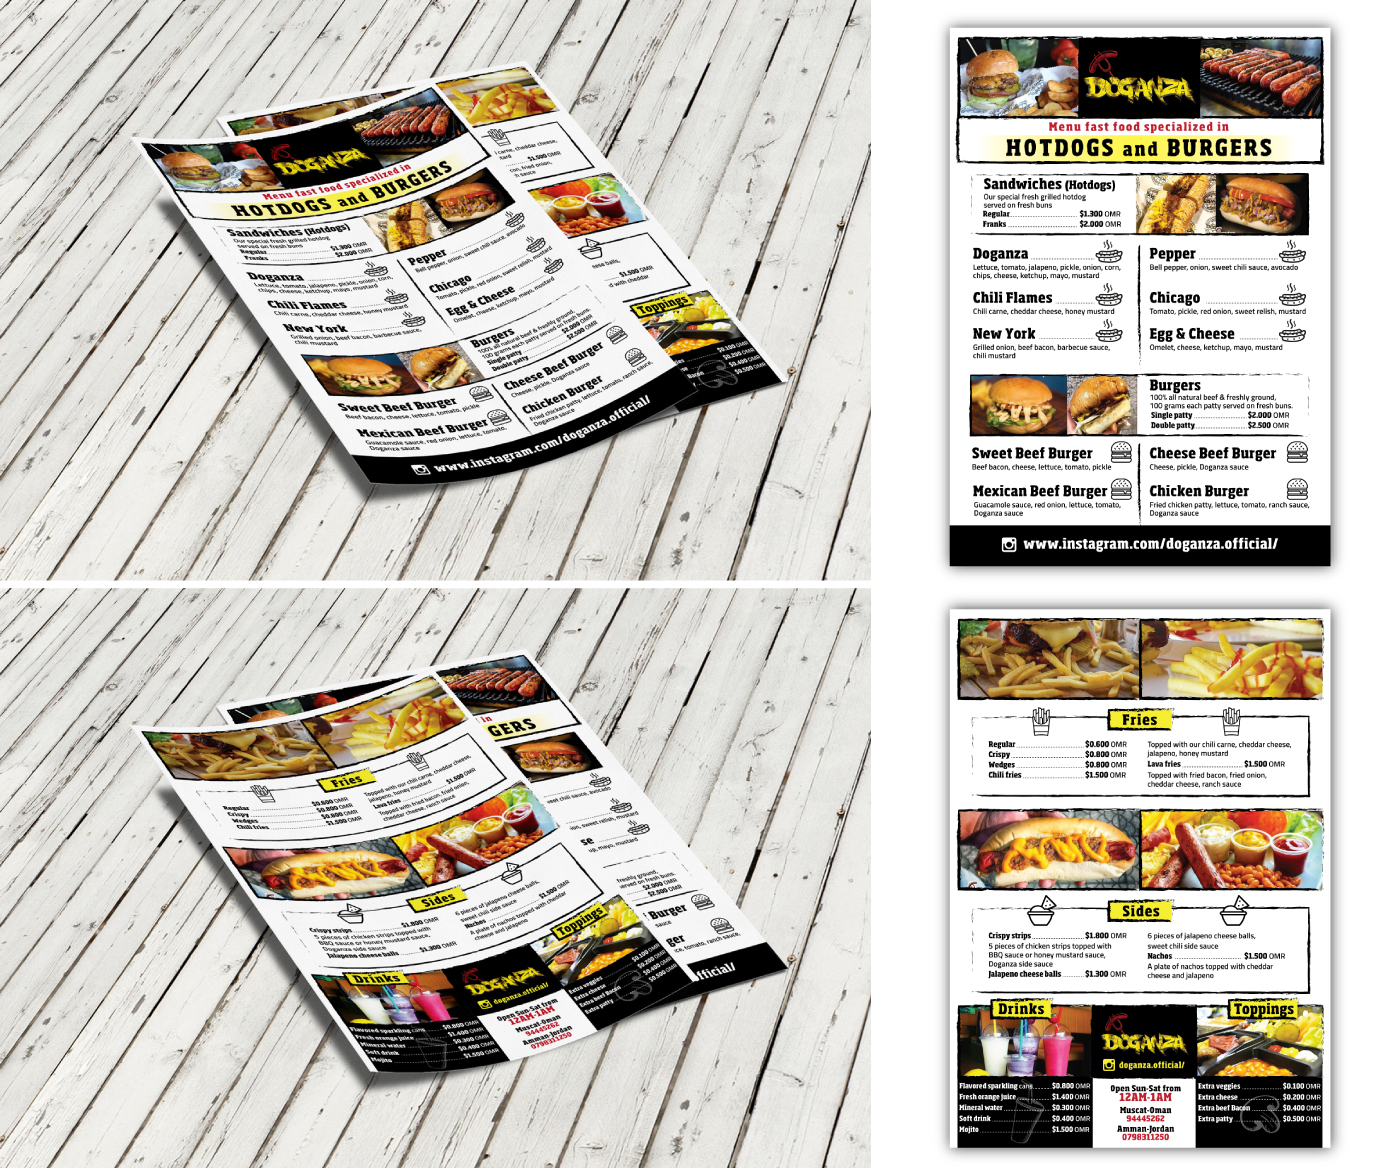 Masculine, Bold, American Restaurant Menu Design for a